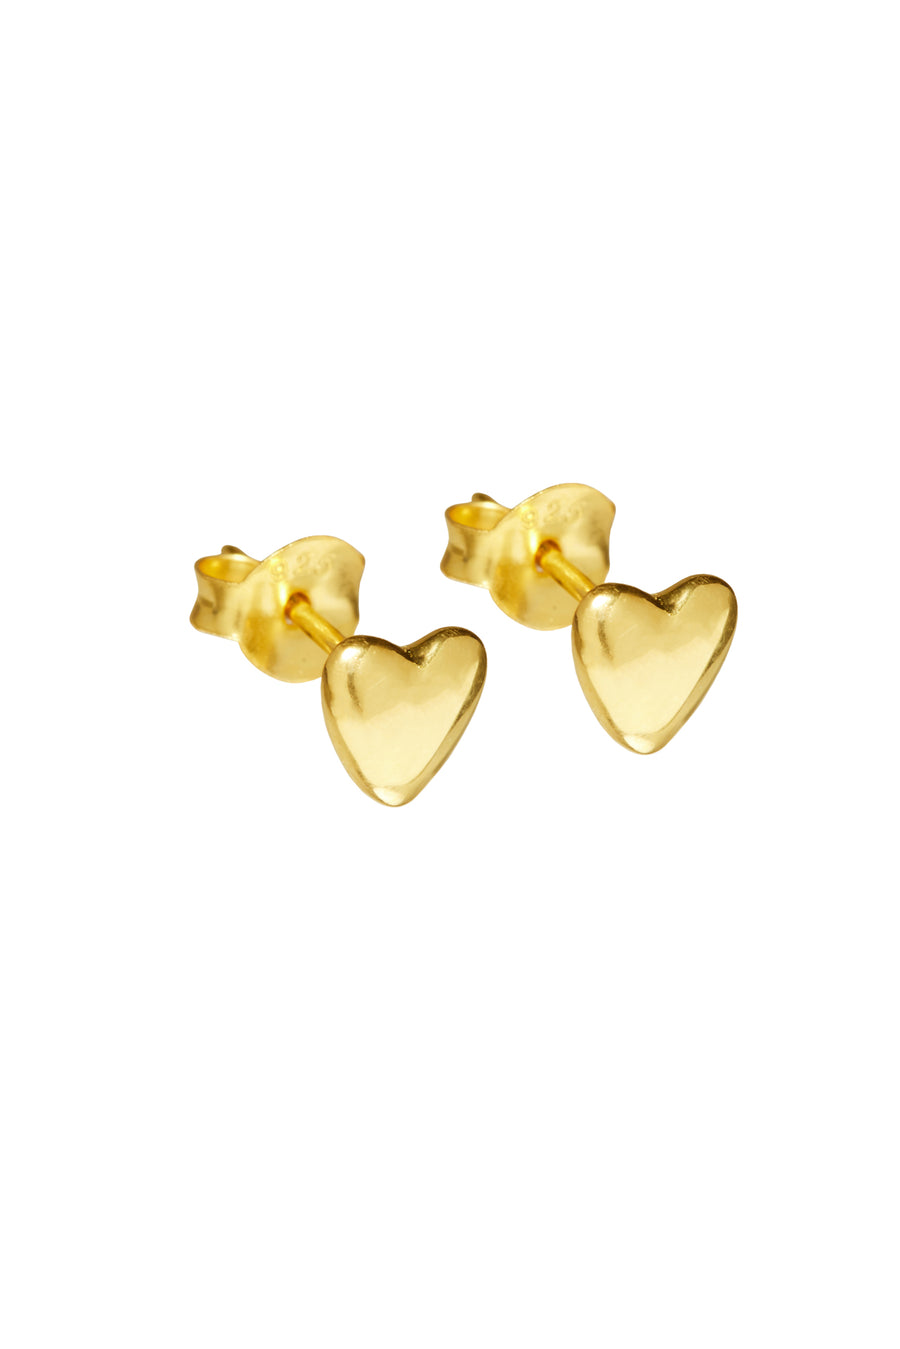 Xzota | Oorbellen | Small heart | Gold plated